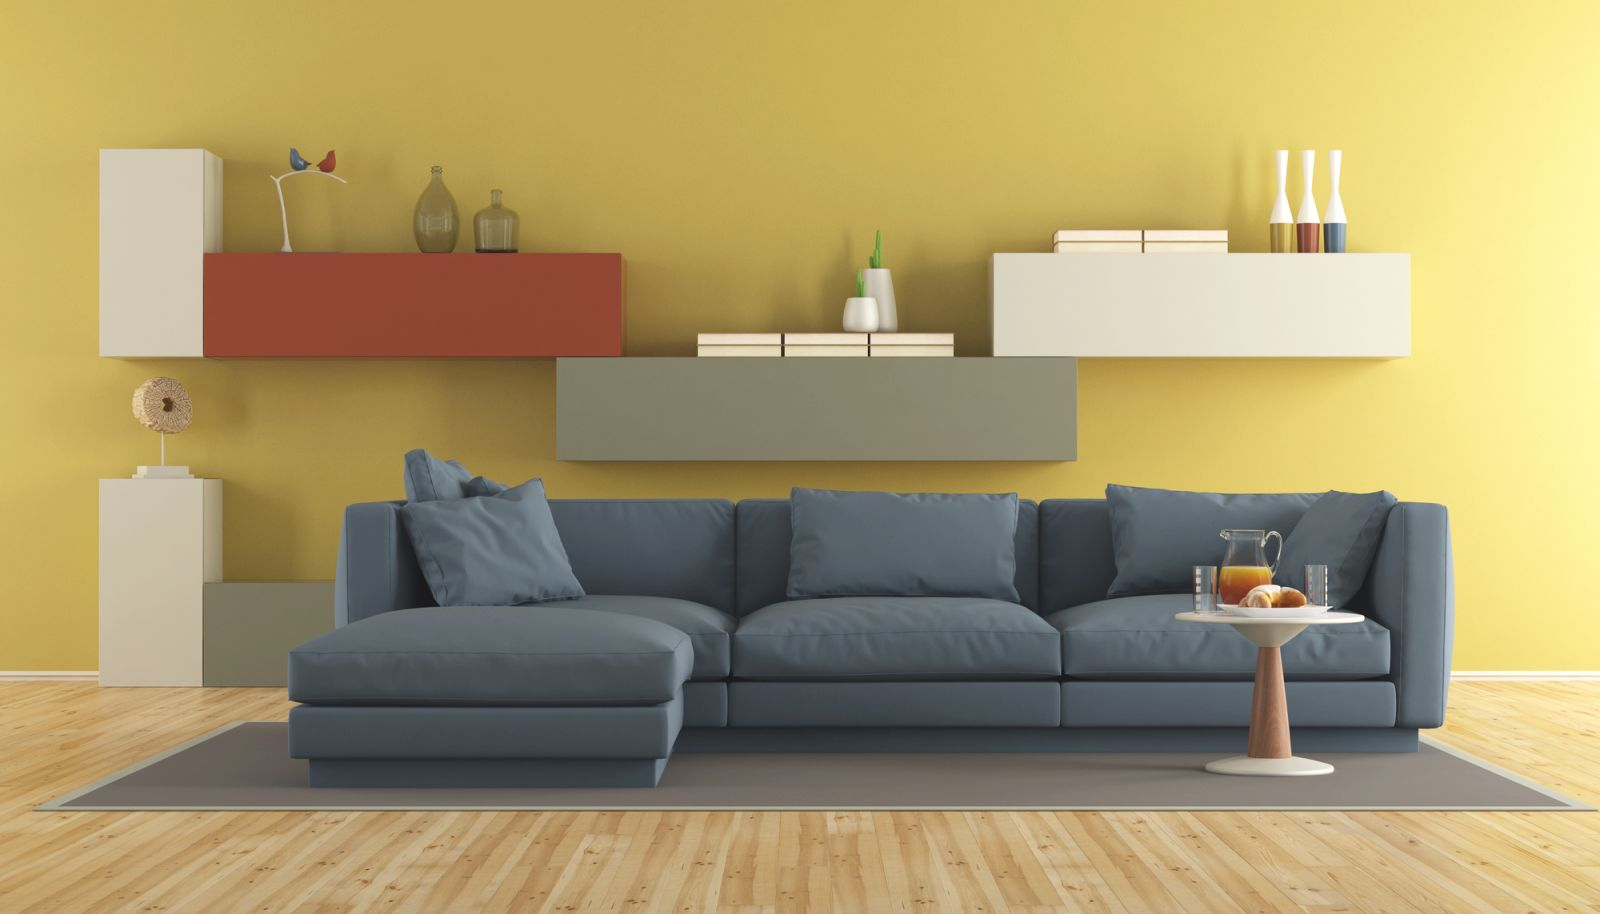 An Ideal Color For Living Room Should Blend Well throughout Yellow Walls Living Room Interior Decor